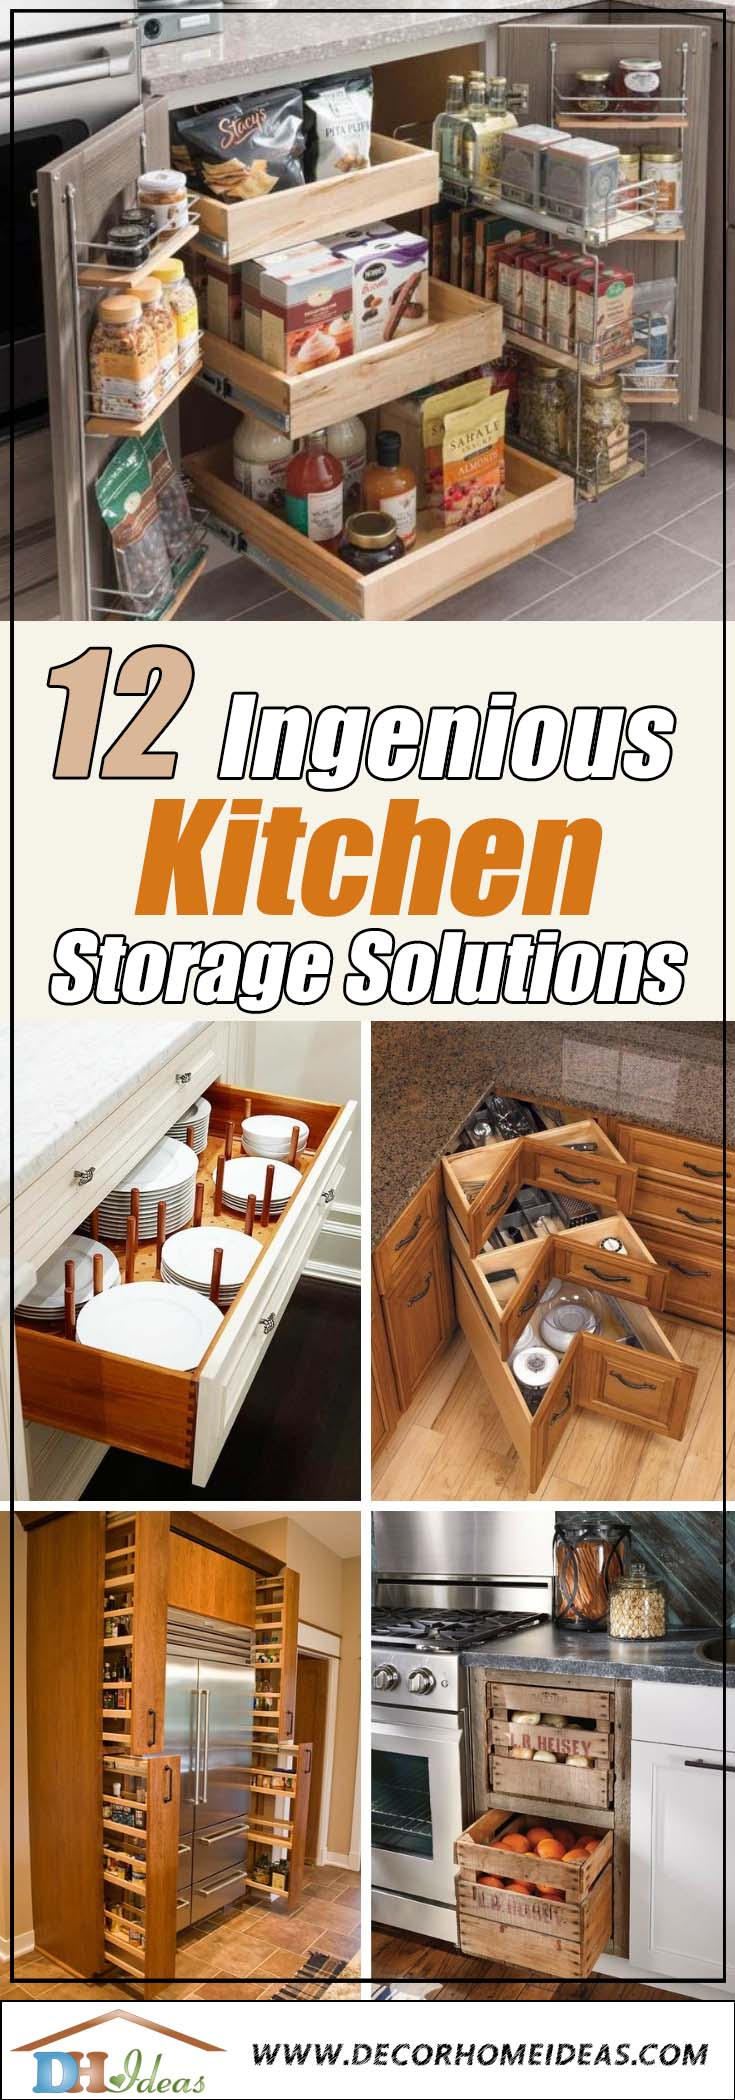 12 Ingenious Kitchen Ideas You Don't Want To Miss | Storage and organization ideas for the kitchen. #kitchen #storage #organization #cupboards #cabinets #shelves #decoratingideas #decorhomeideas